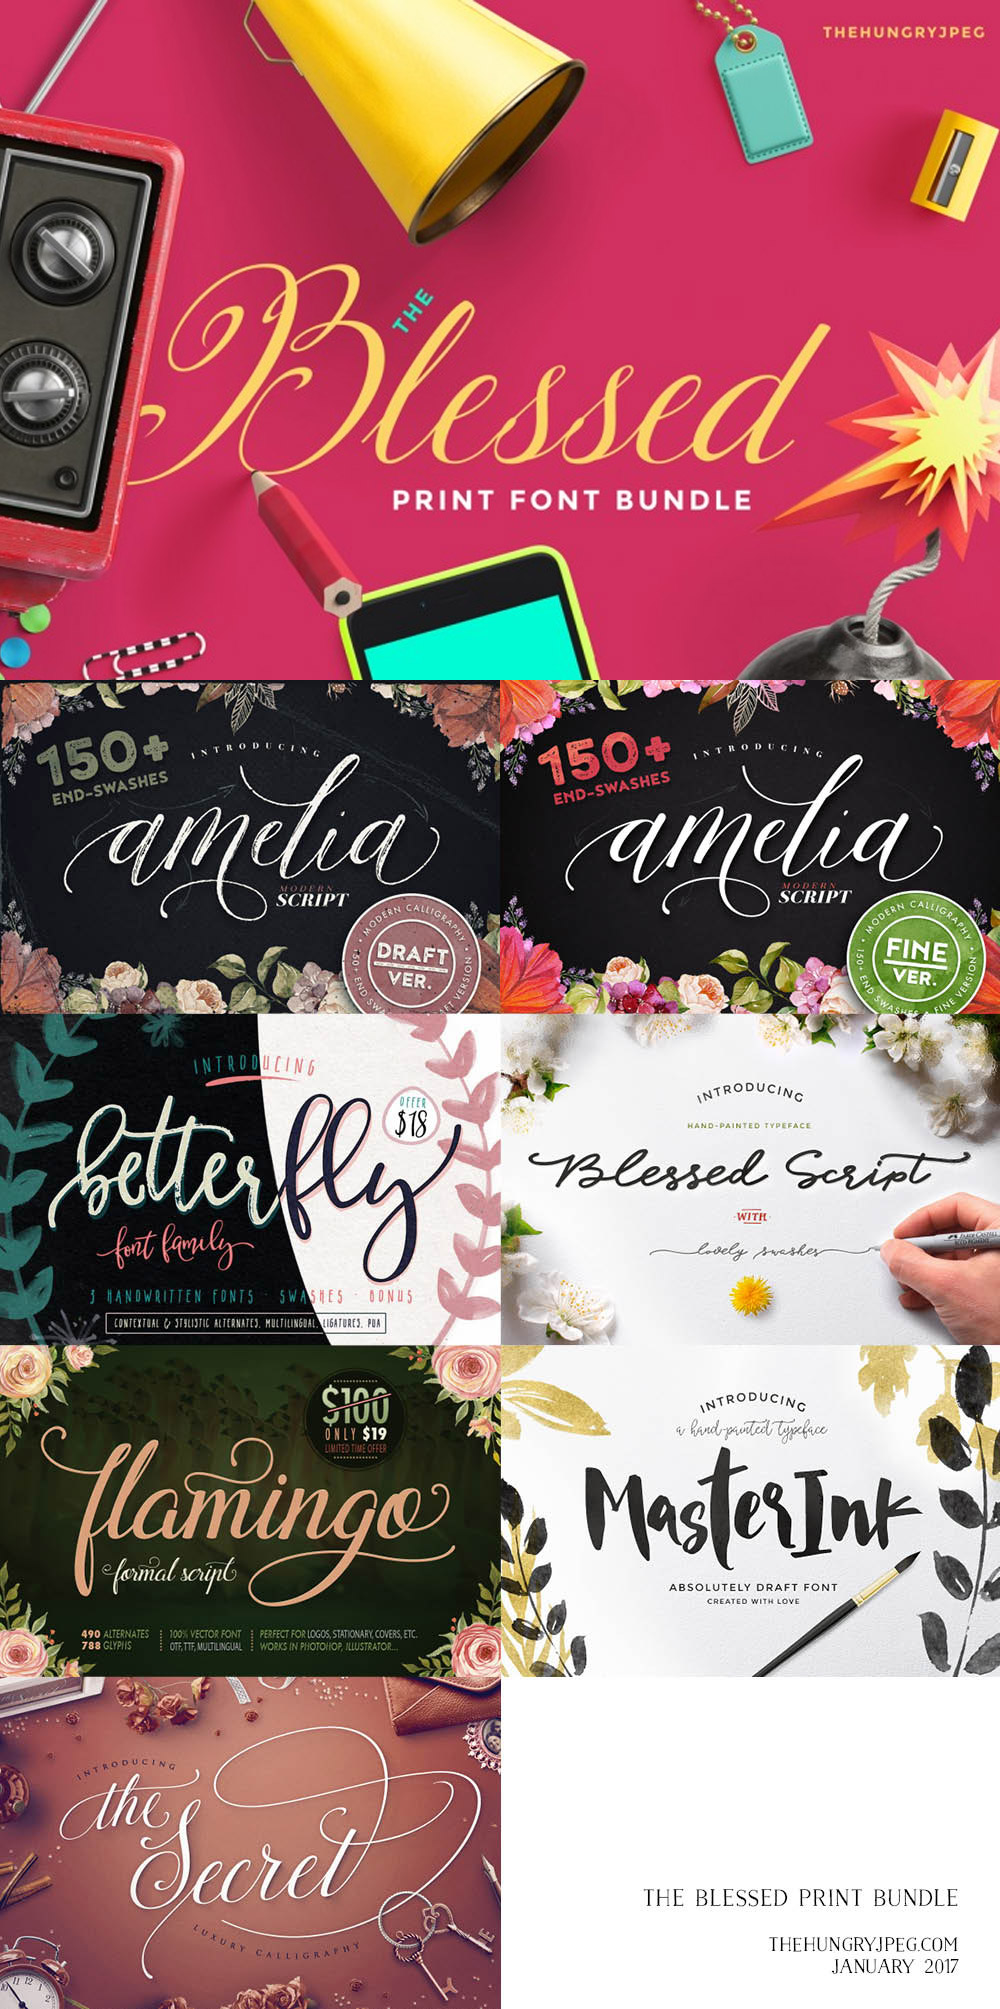 Blessed Print Font Bundle